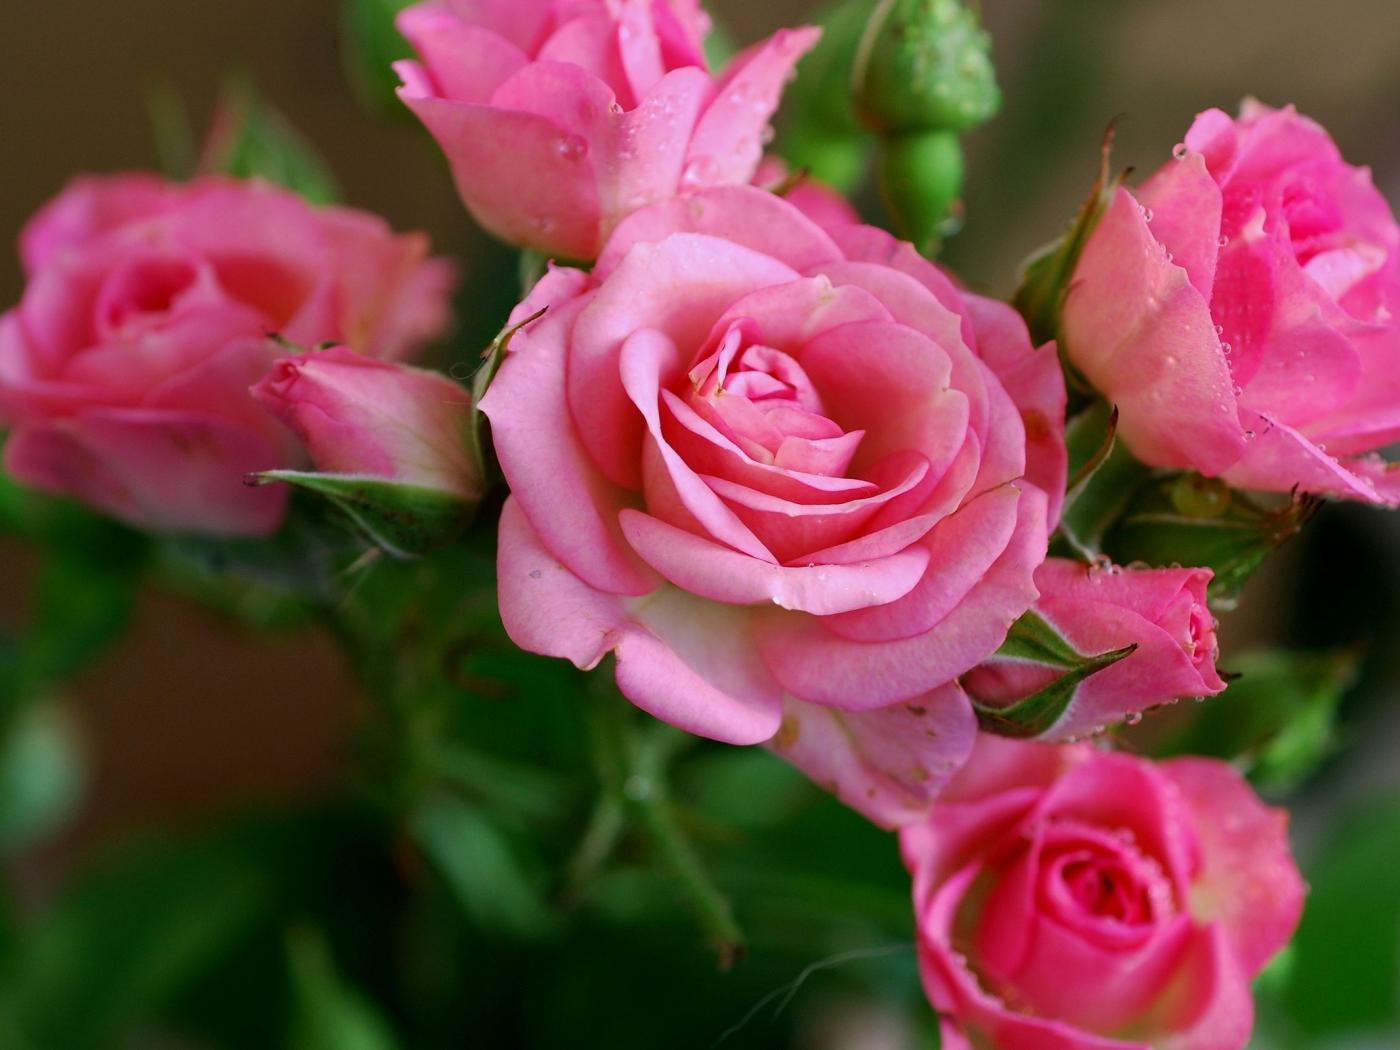 Nature wallpaper with pink rose flower hd wallpapers for - Pink rose hd wallpaper ...